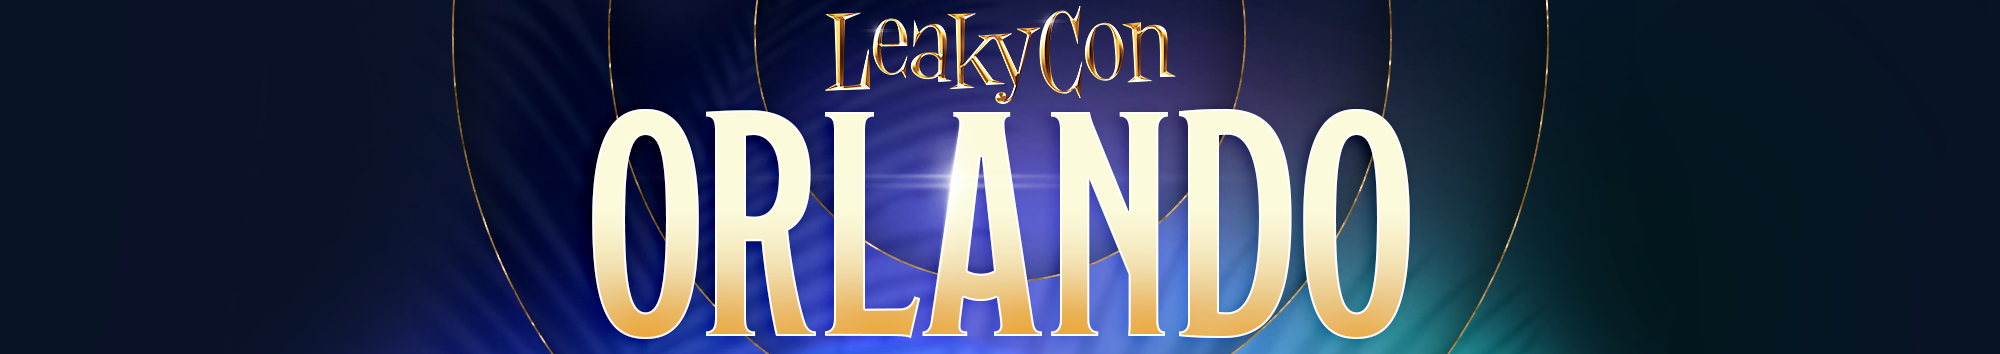 Tickets for LeakyCon 2020: Orlando Add On Experiences in Orlando from ShowClix